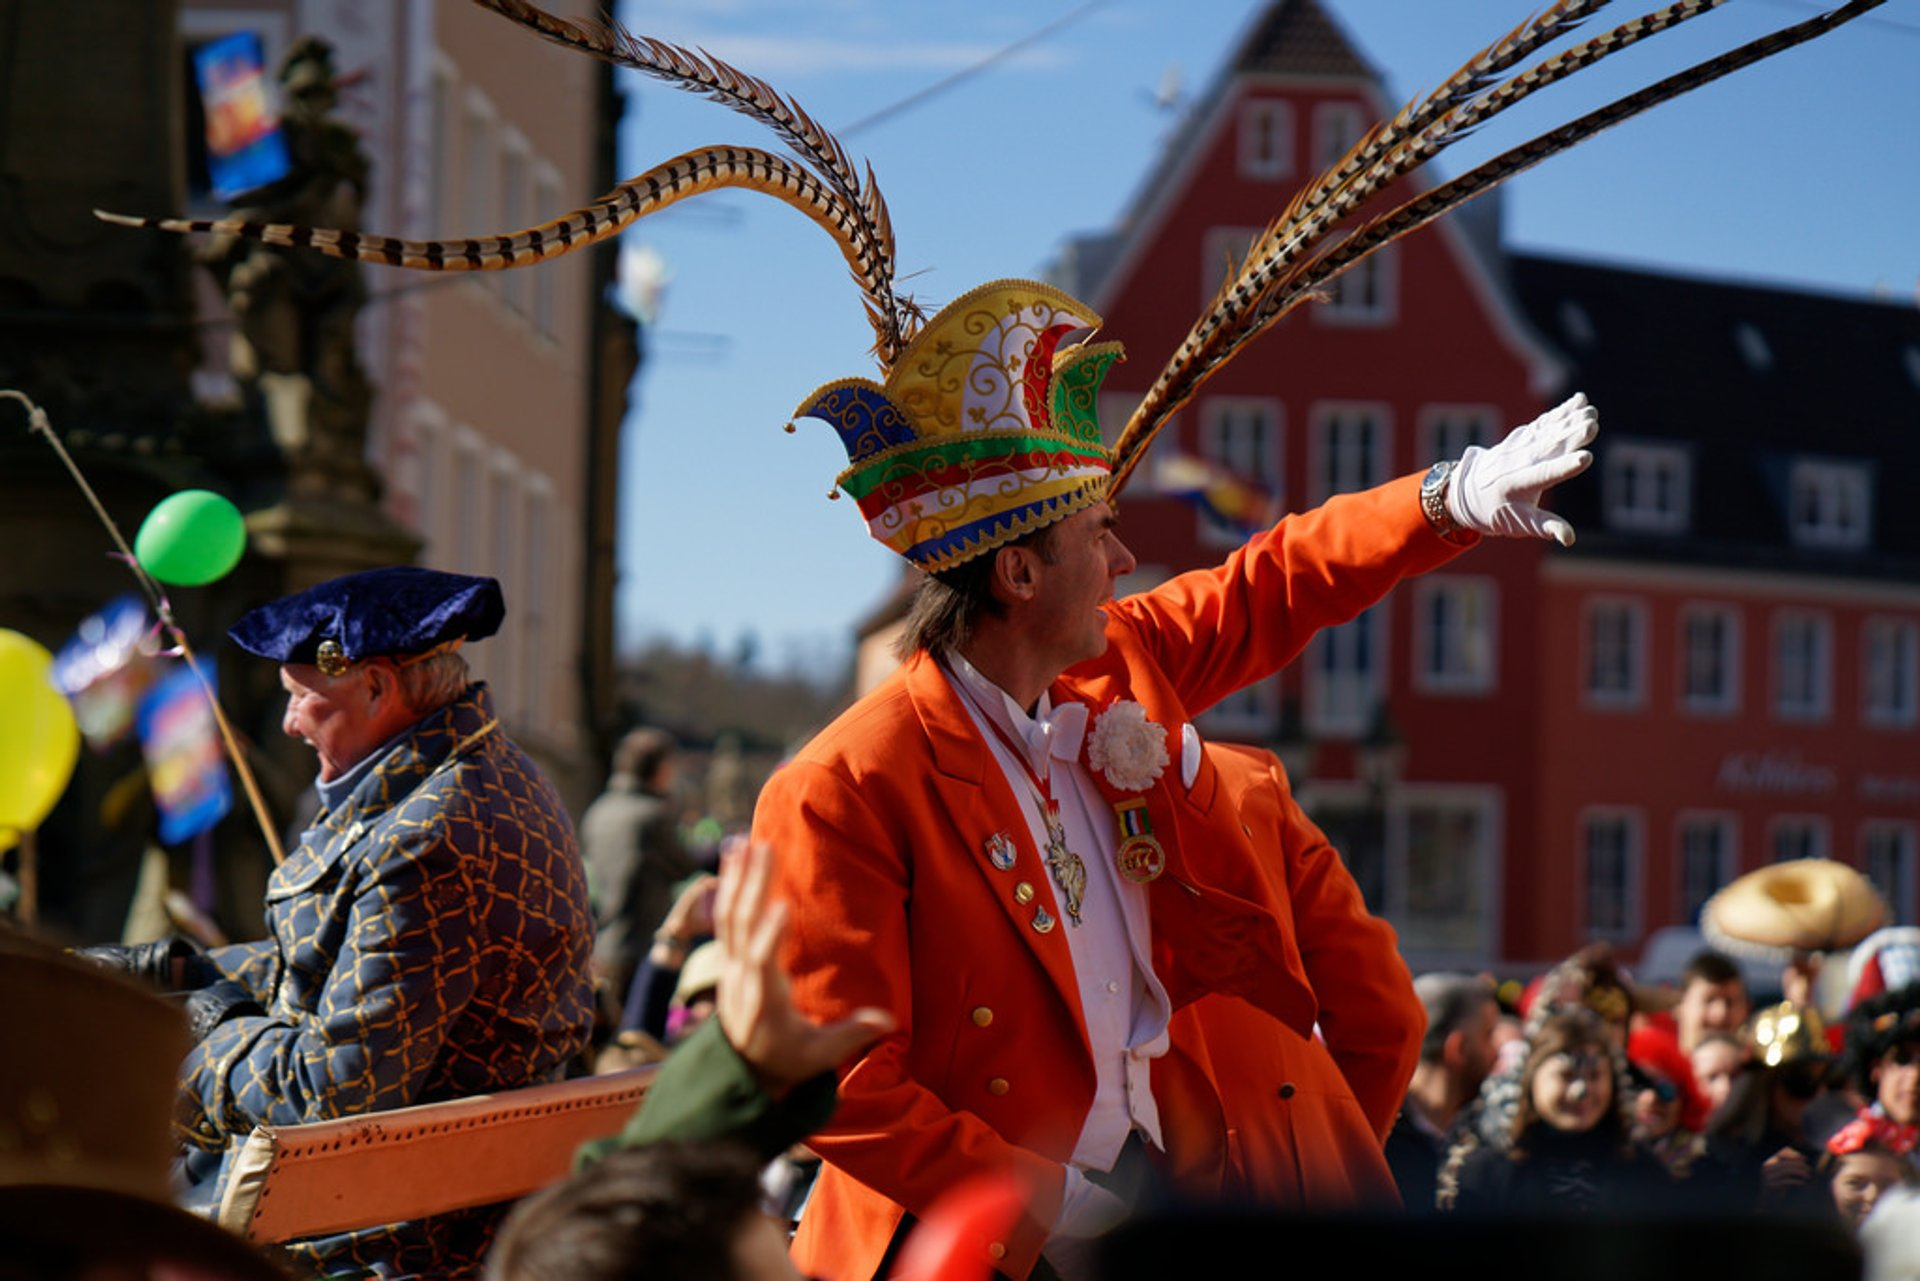 Fasching, Karneval and Fastnacht in Germany 2020 - Best Time